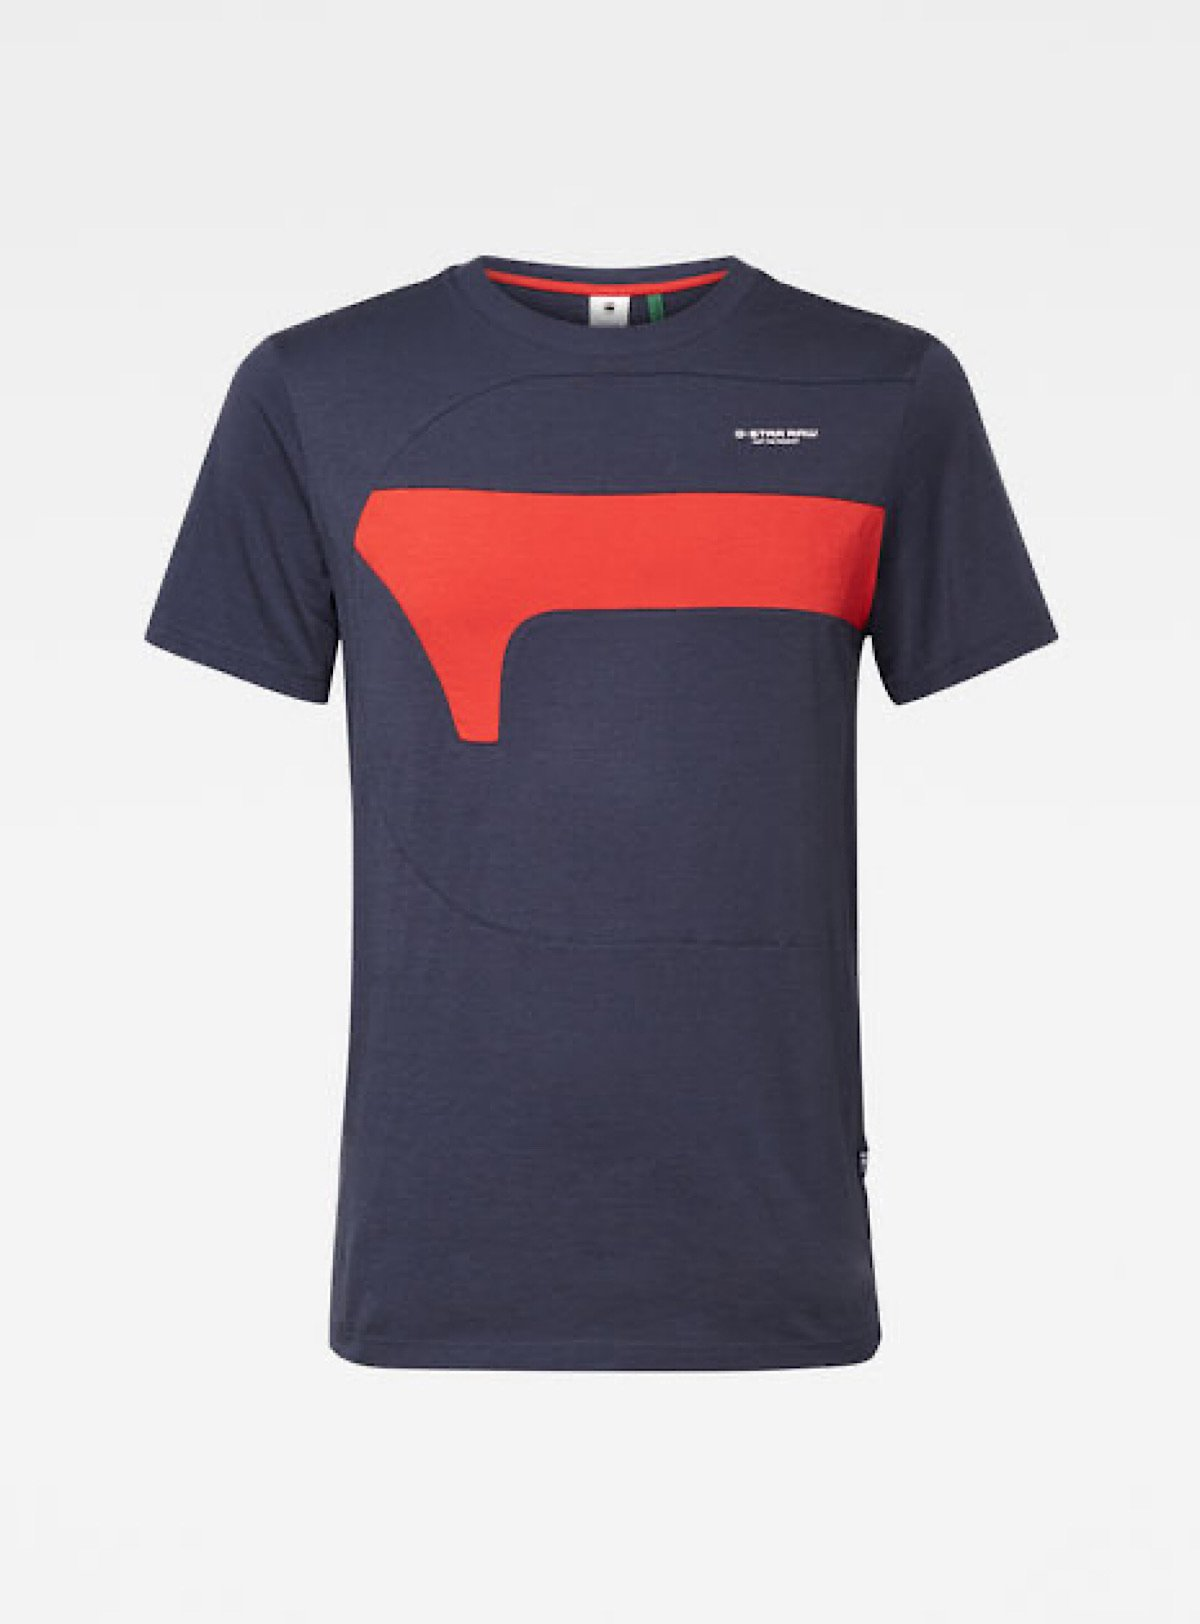 G-Star T-Shirt - Cut And Sewn - Navy And Red - D17123-336